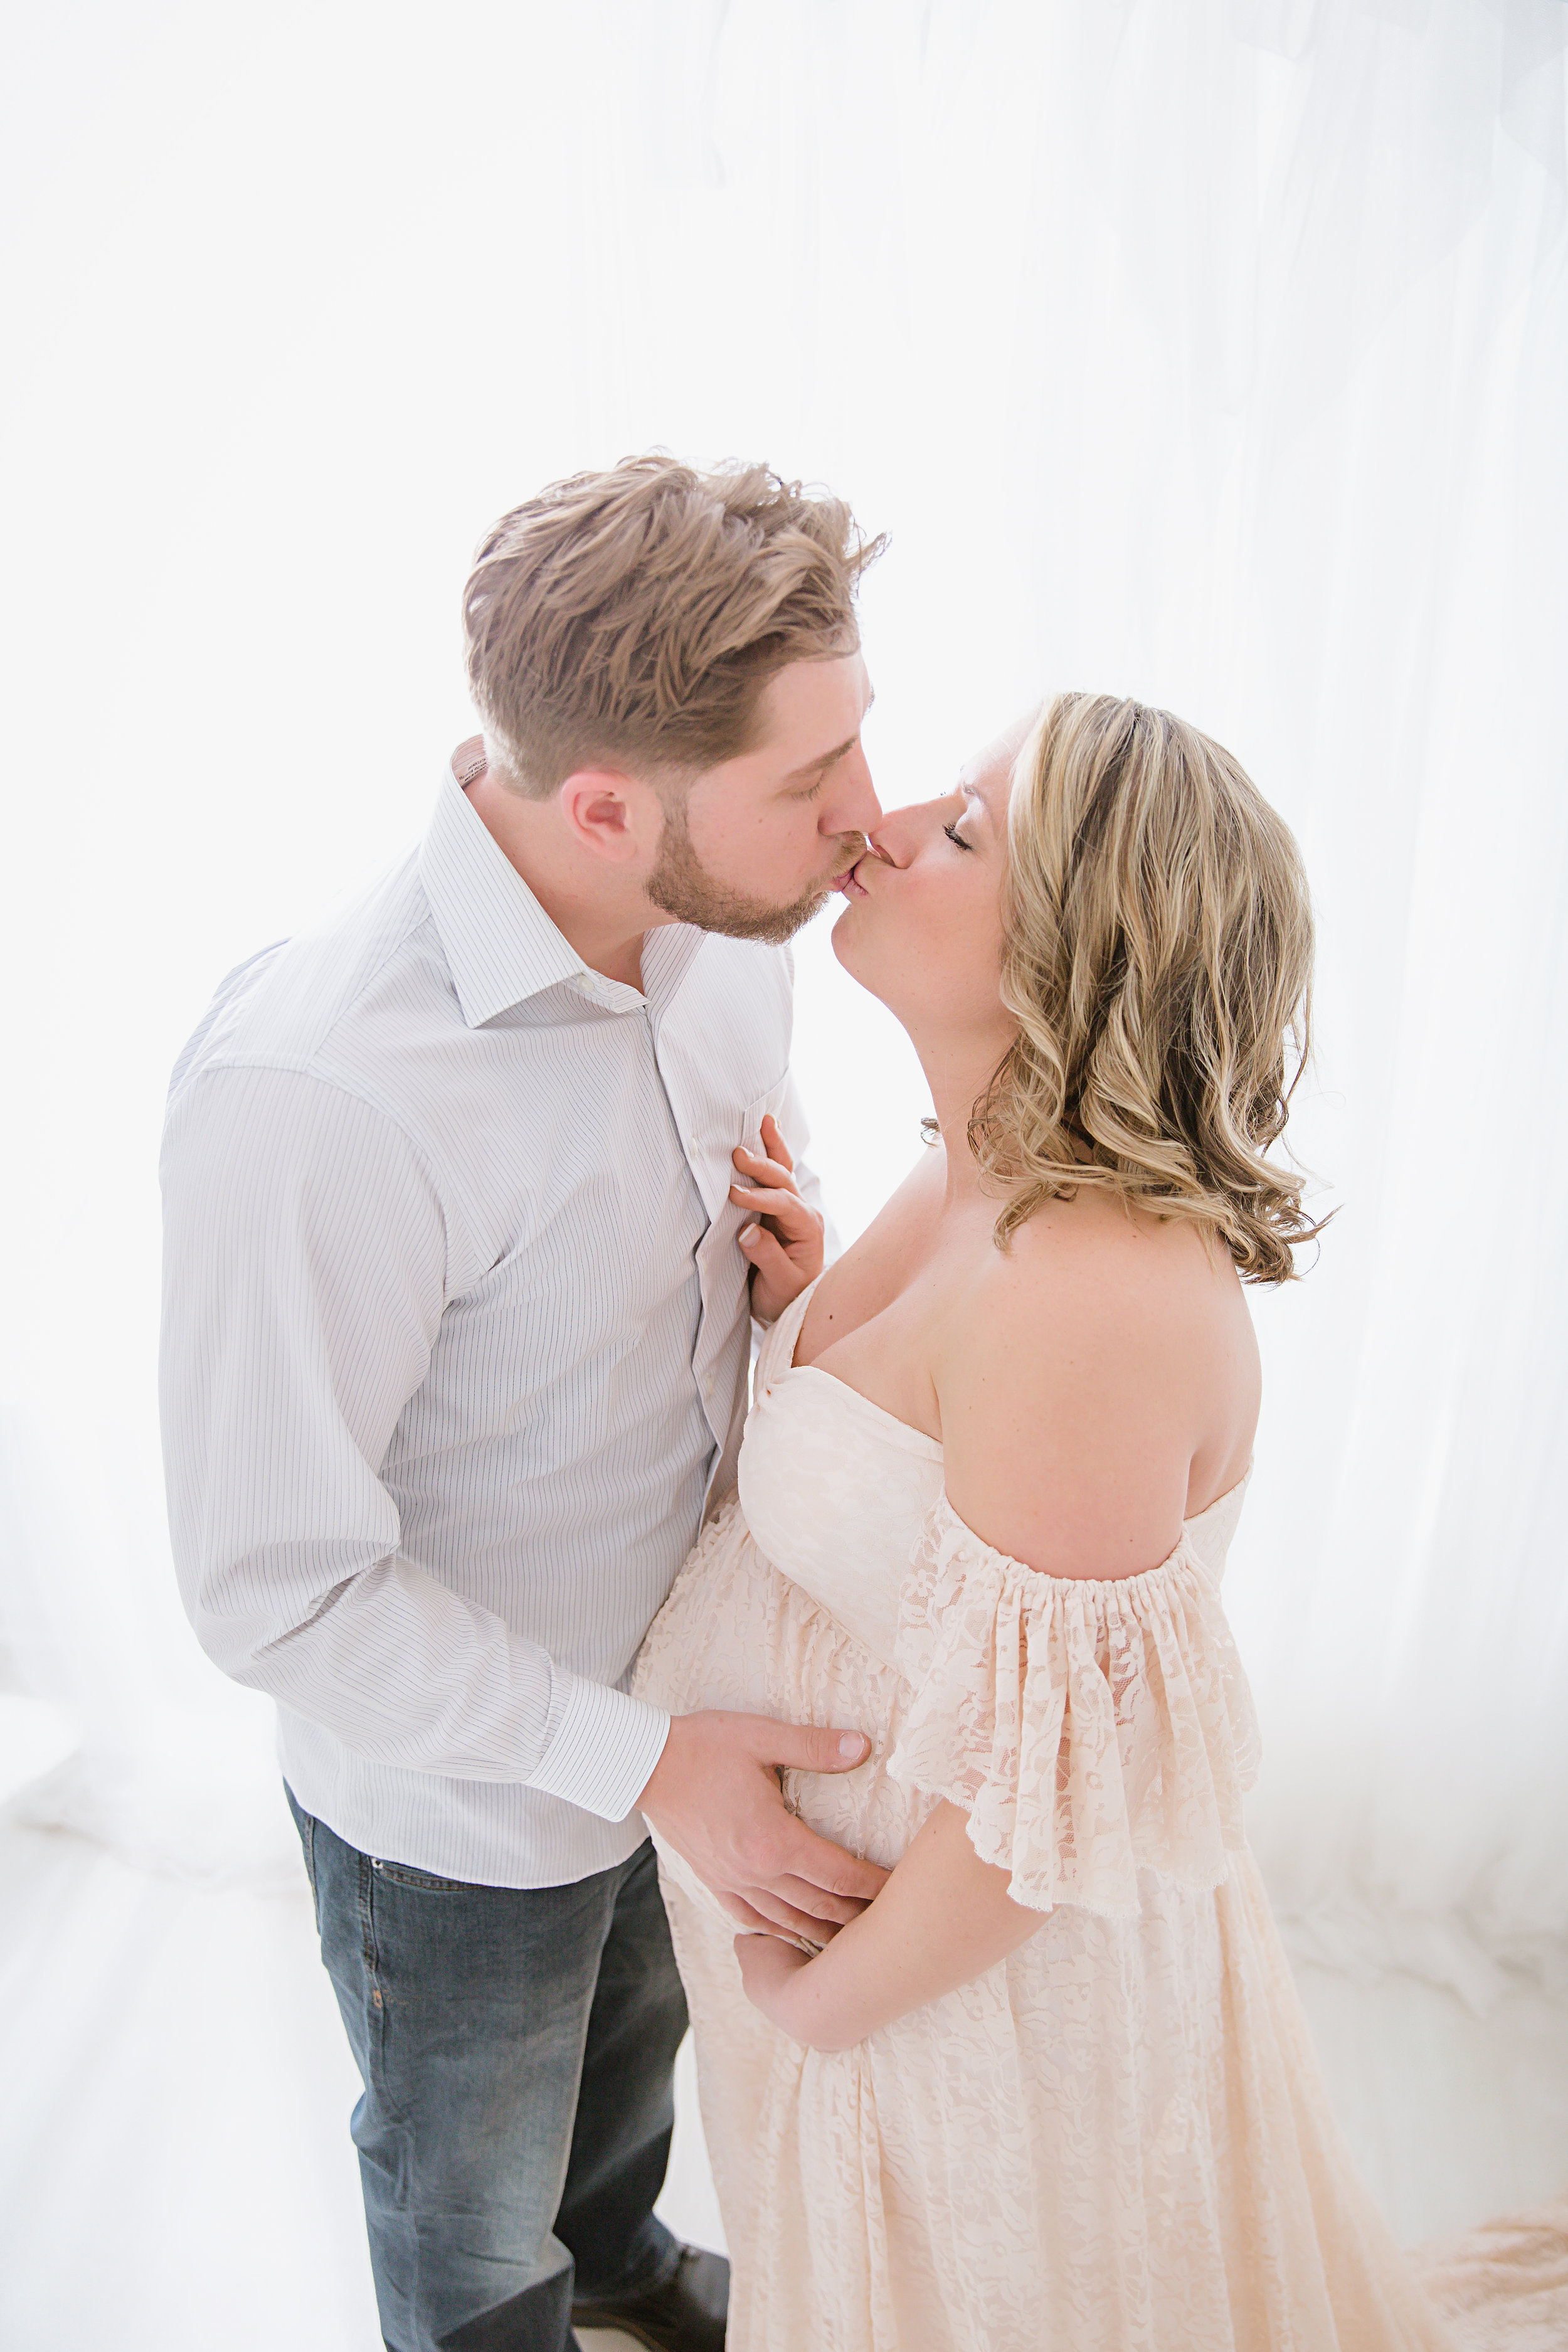 in-studio-maternity-session-with-mom-and-dad-kissing-eachother-while-holding-belly